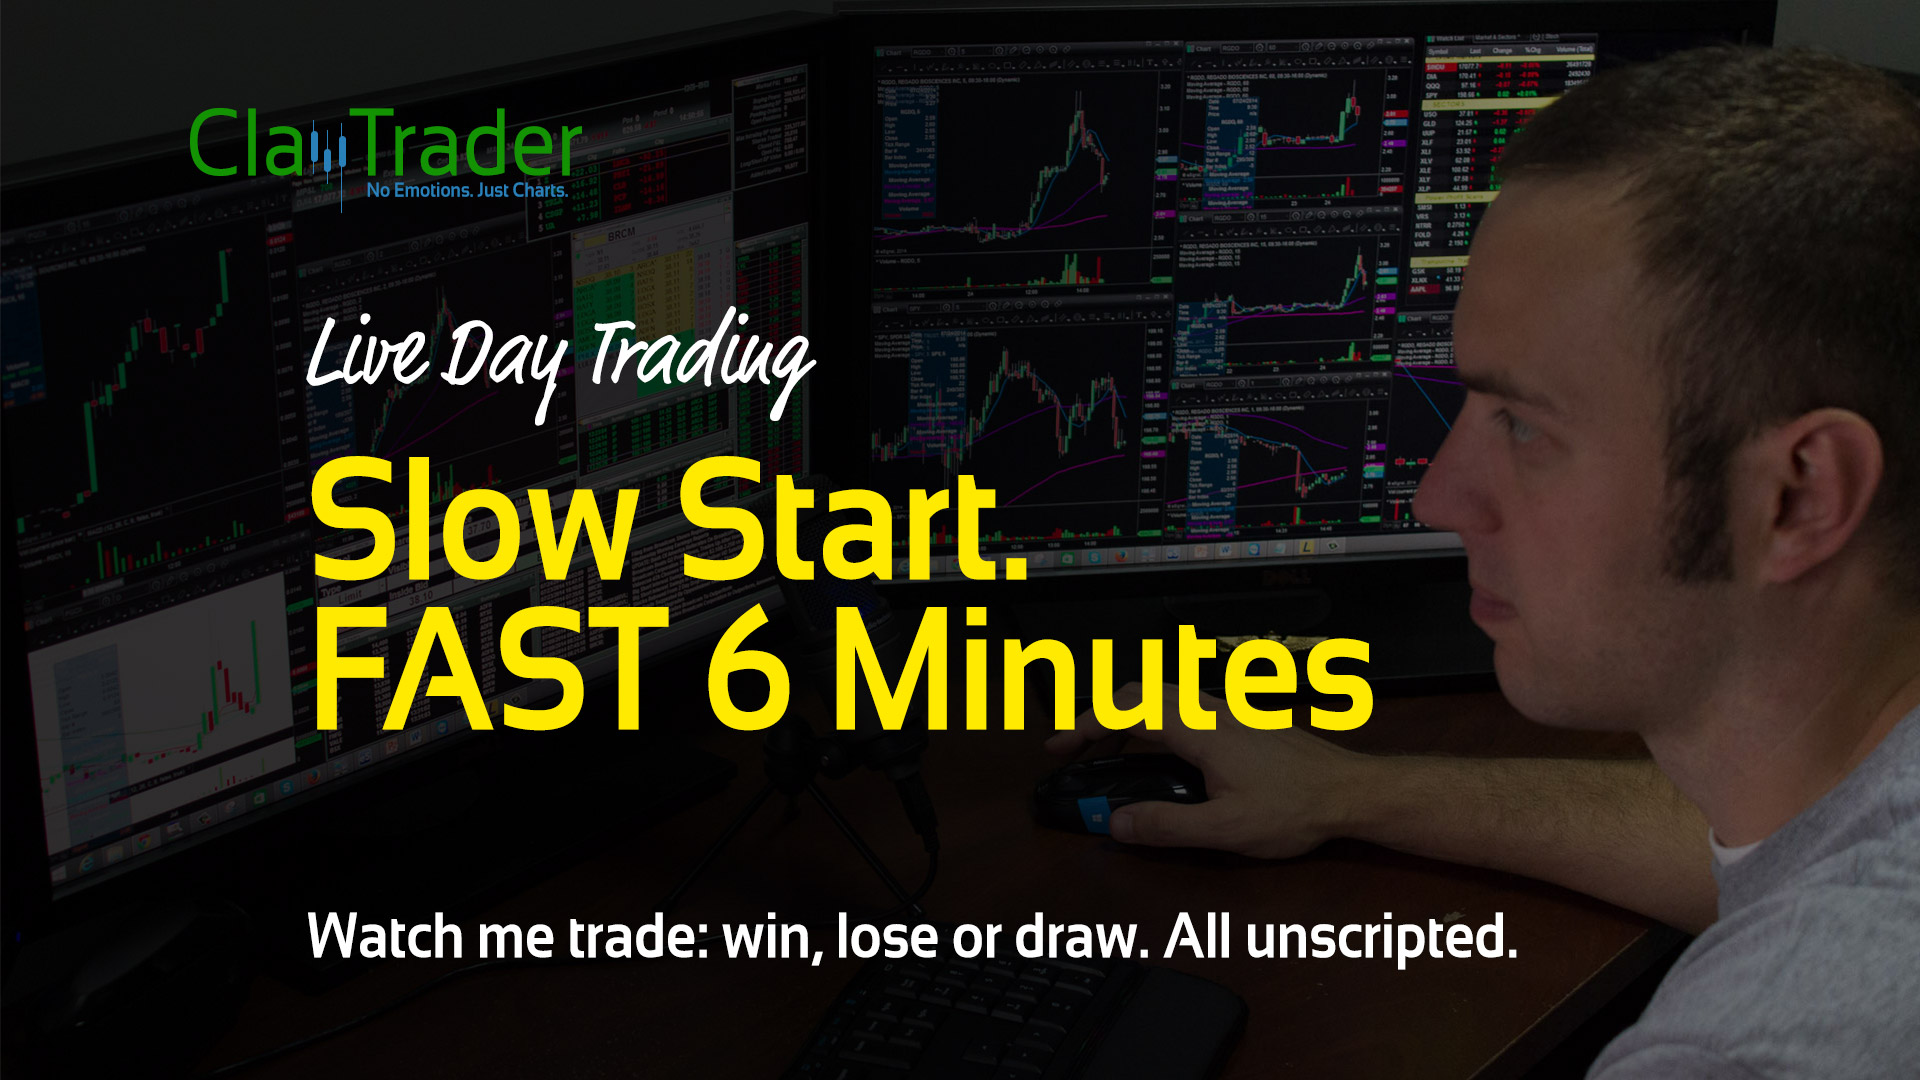 Live Day Trading - Slow Start. FAST 6 Minutes